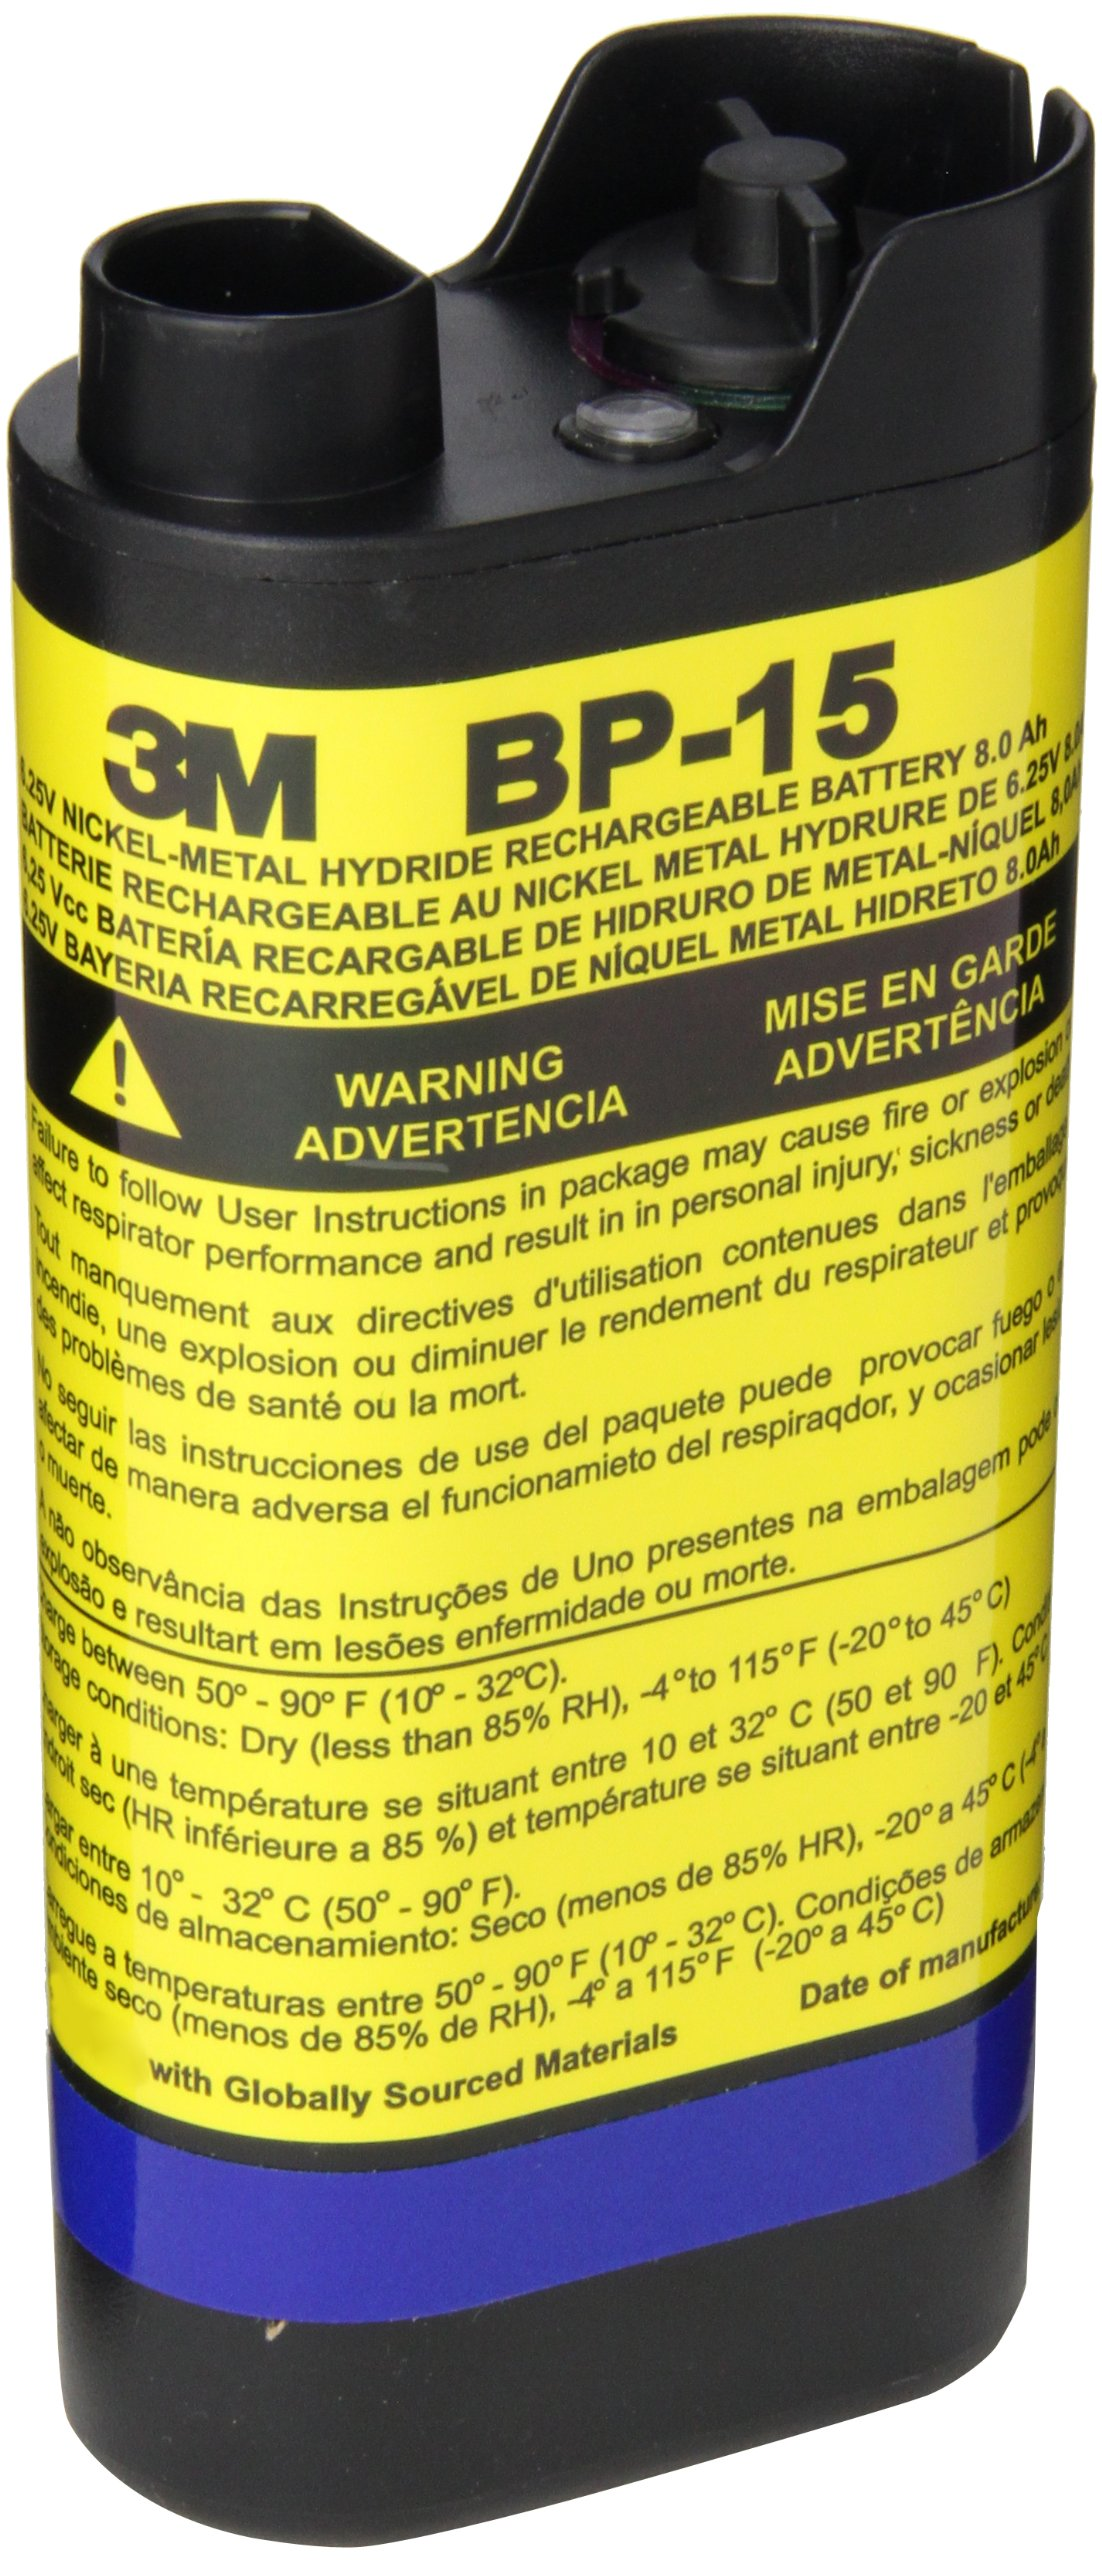 3M Breathe Easy Turbo Powered Air Purifying Respirator (PAPR) NiMH Battery Pack, Respiratory Protection BP-15